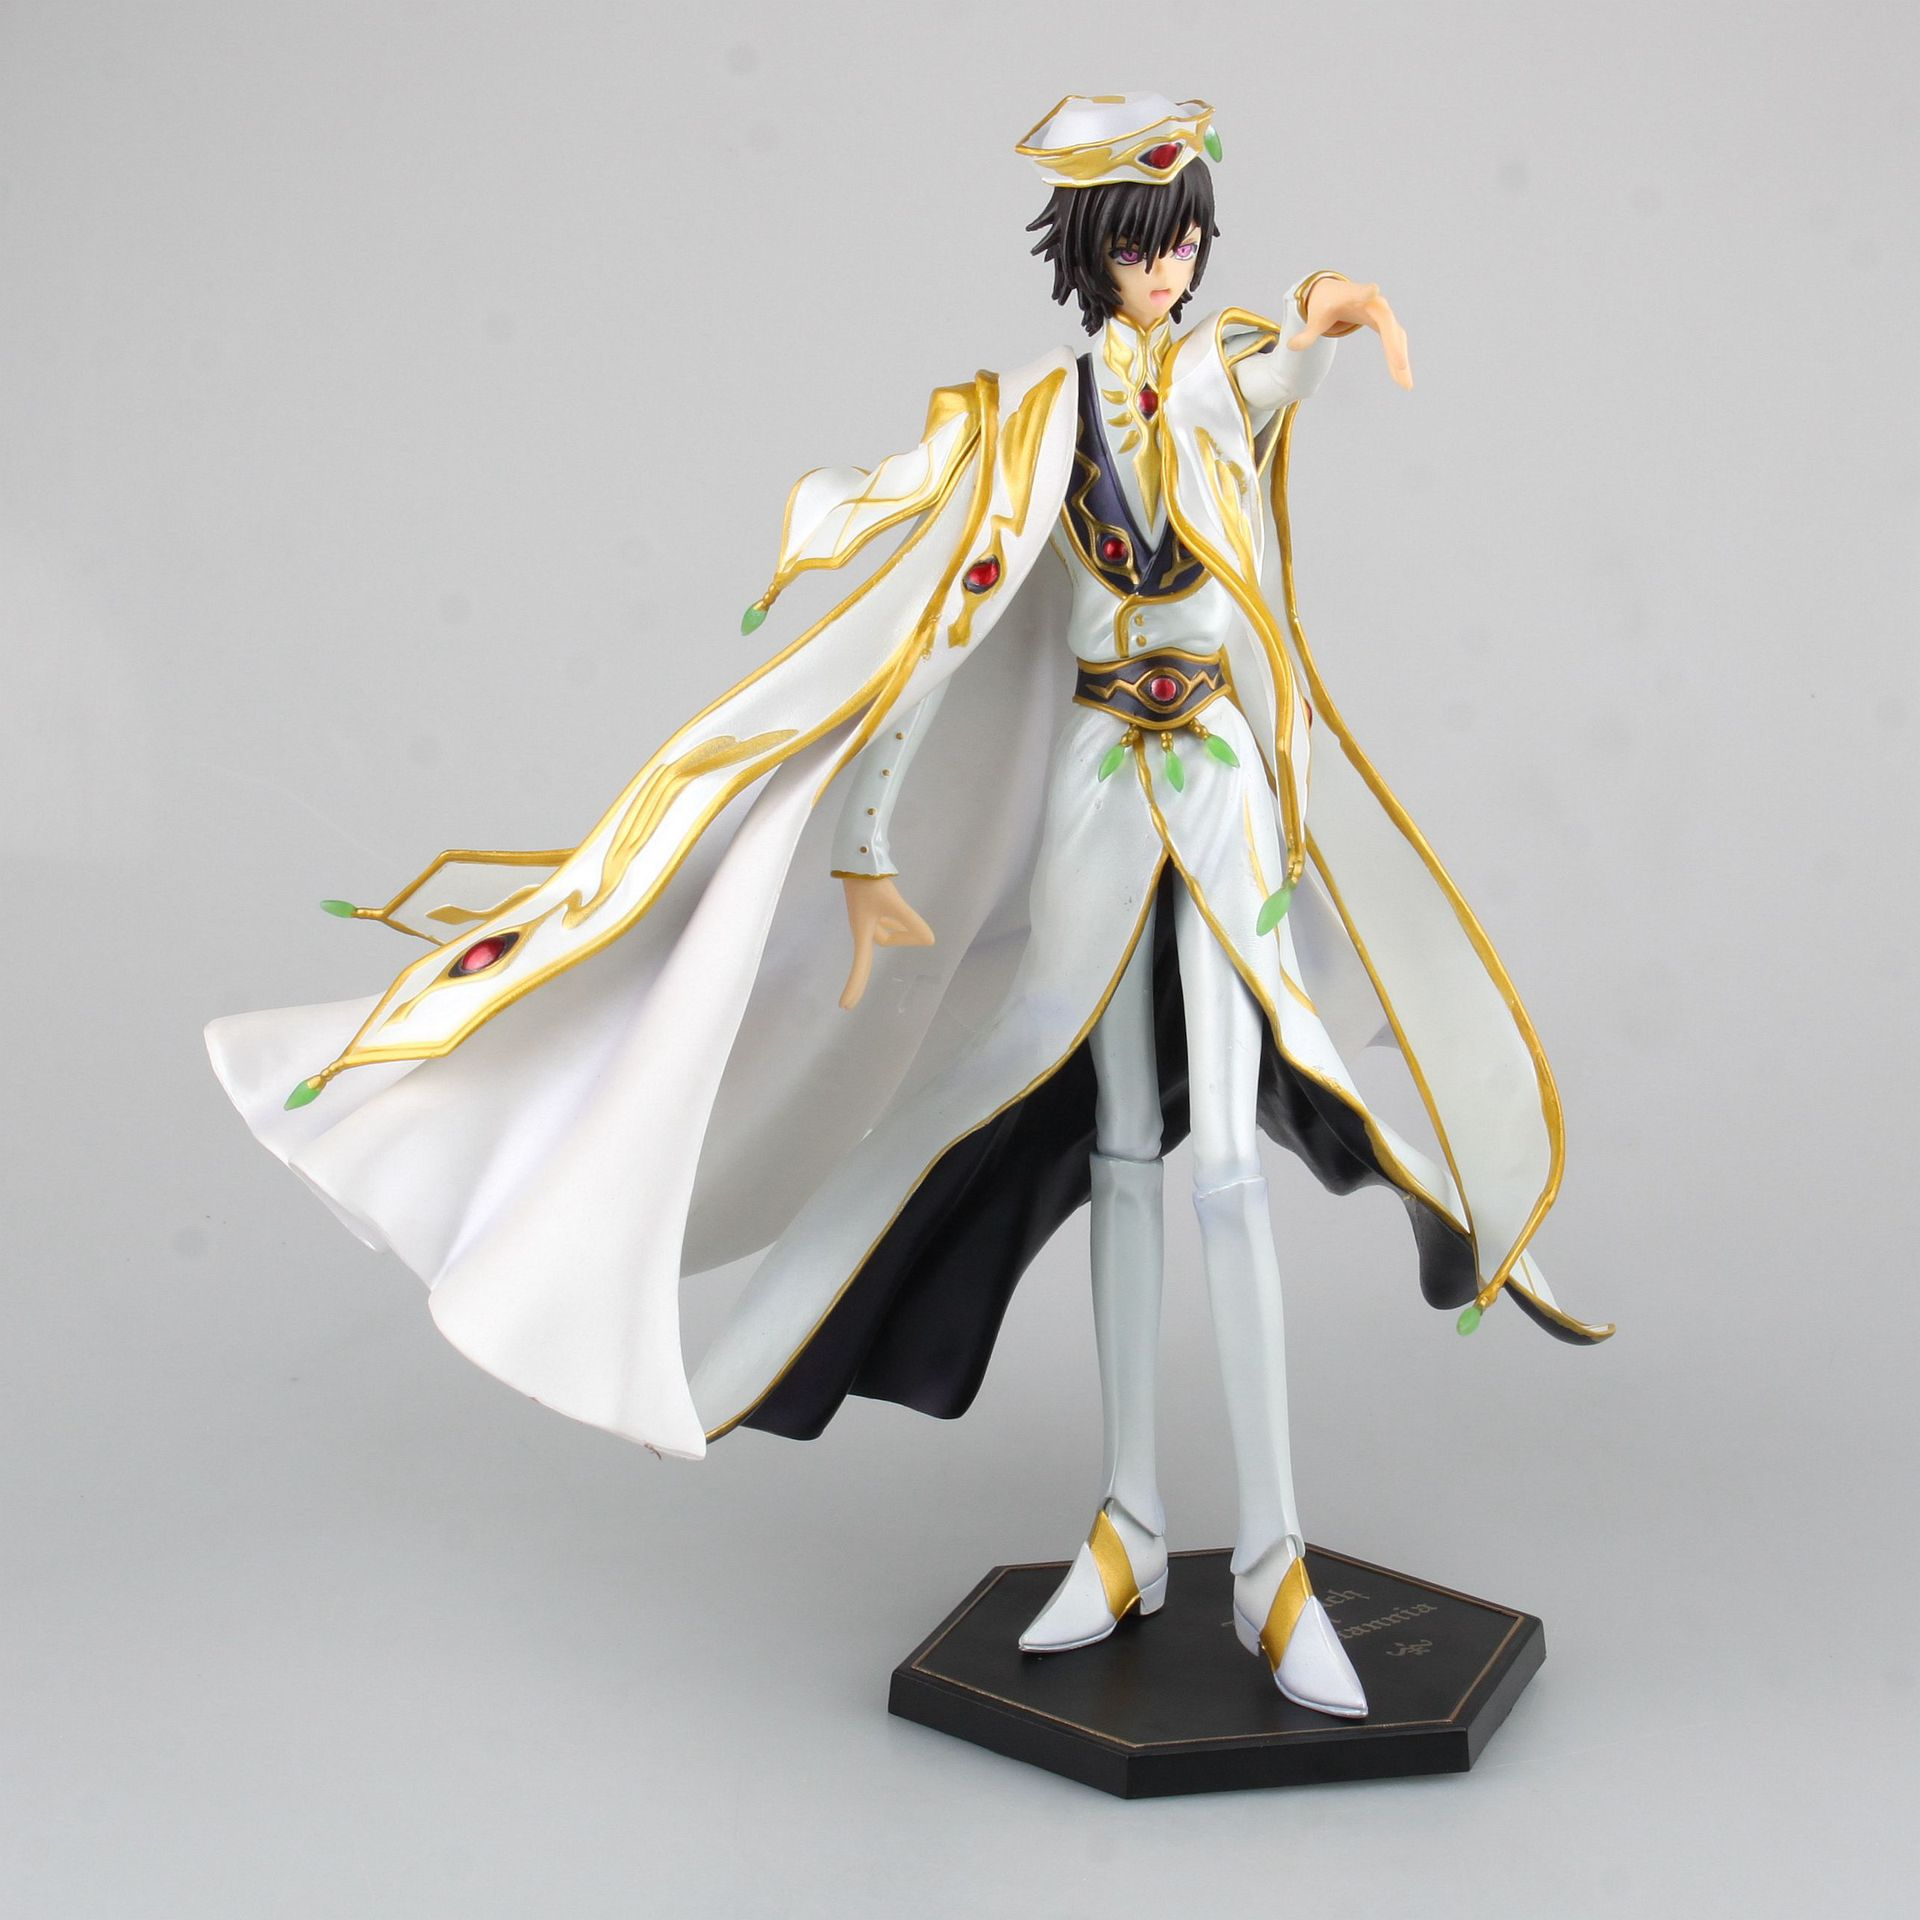 1pcs 24cm pvc Japanese anime figure Code Geass Lelouch Lamperouge action figure collectible model toys brinquedos hot 1pcs 28cm pvc japanese sexy anime figure dragon toy tag policwoman action figure collectible model toys brinquedos